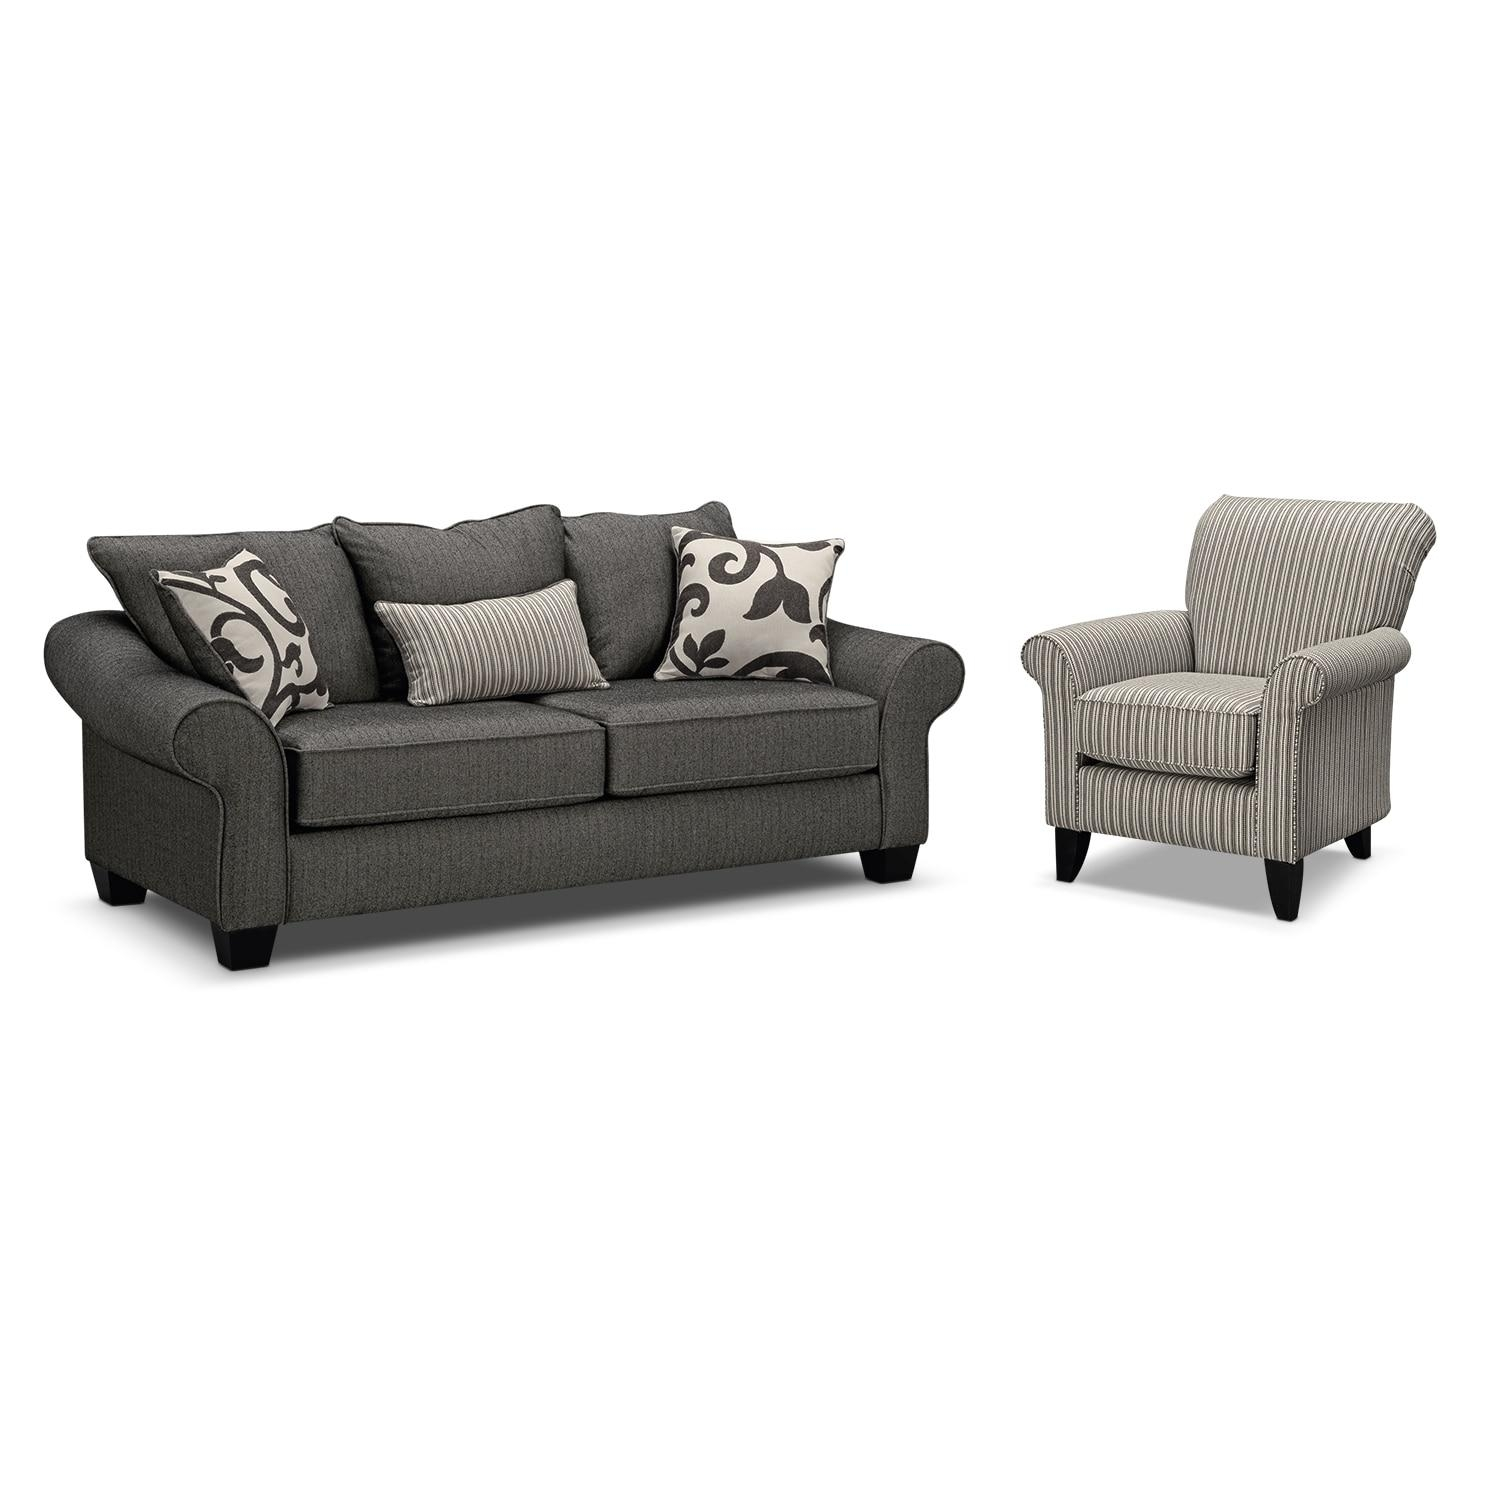 Colette Sofa And Accent Chair Set – Gray | Value City Furniture For Sofa And Accent Chair Set (View 8 of 20)